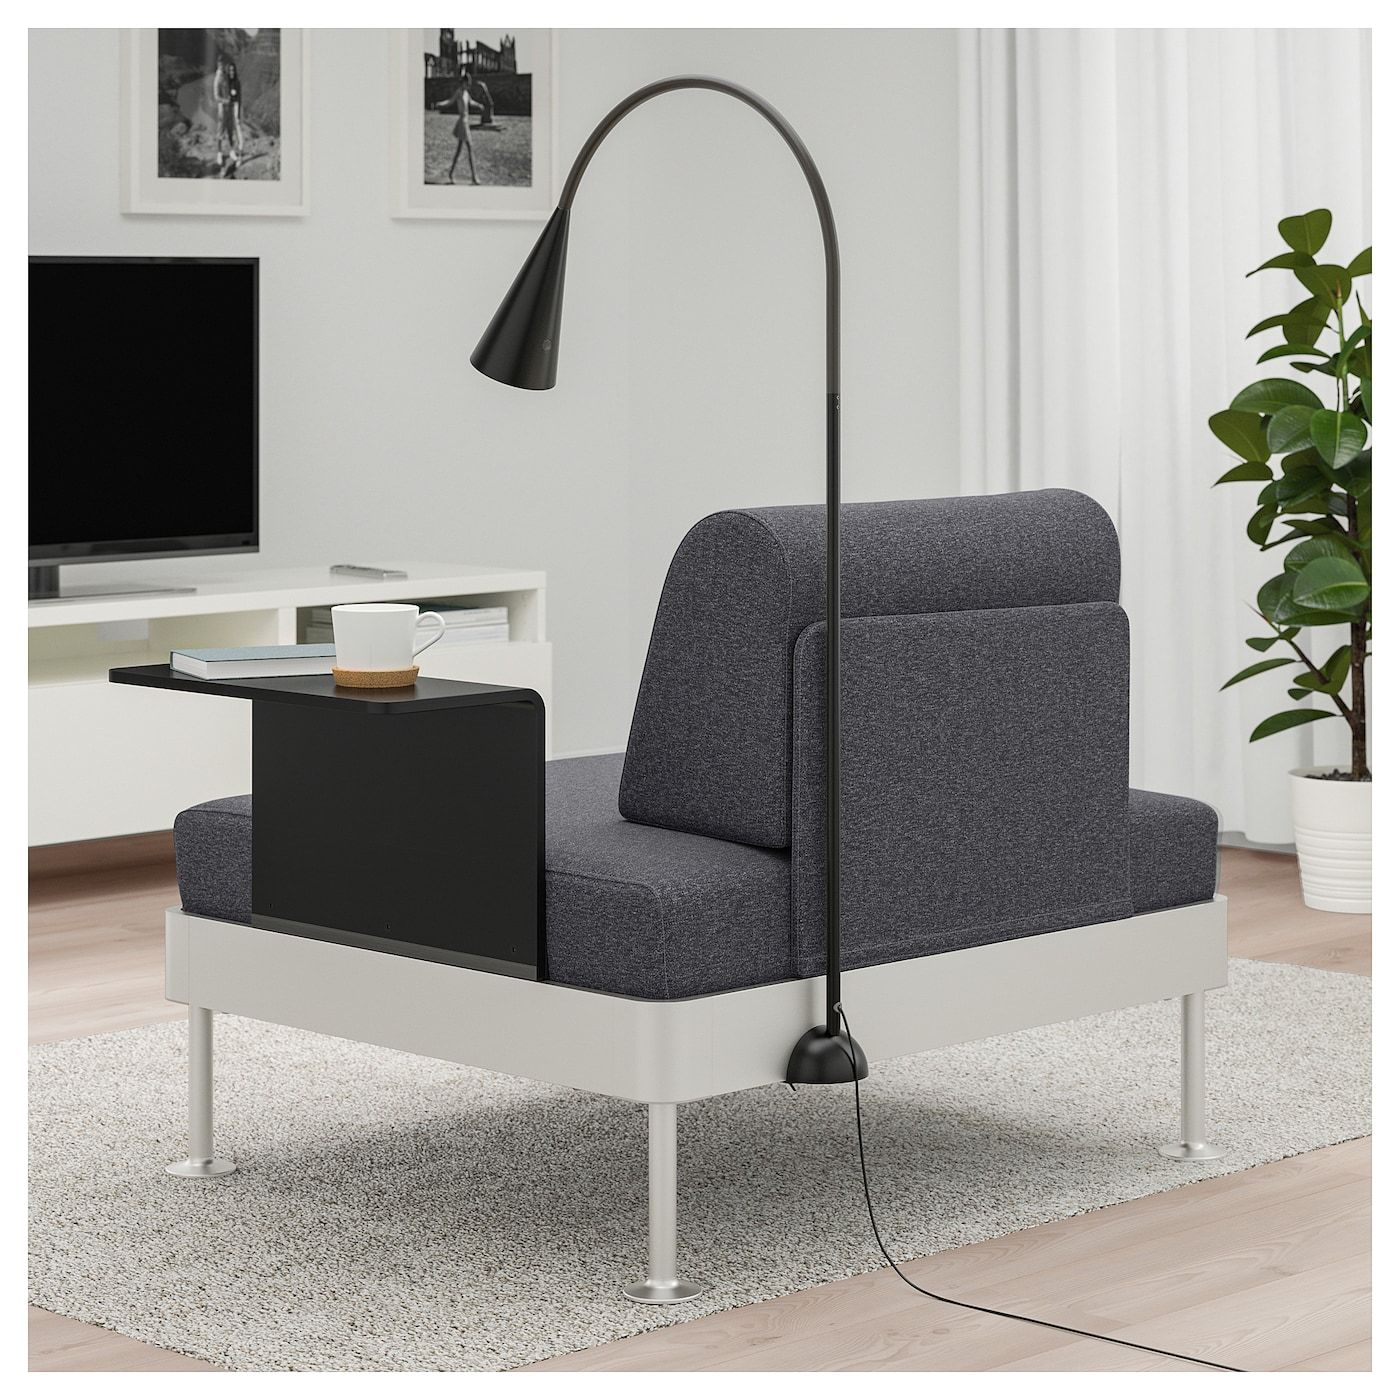 Delaktig Armchair With Side Table And Lamp Gunnared Medium Gray Ikea In 2020 Painted Side Tables Ikea Armchair